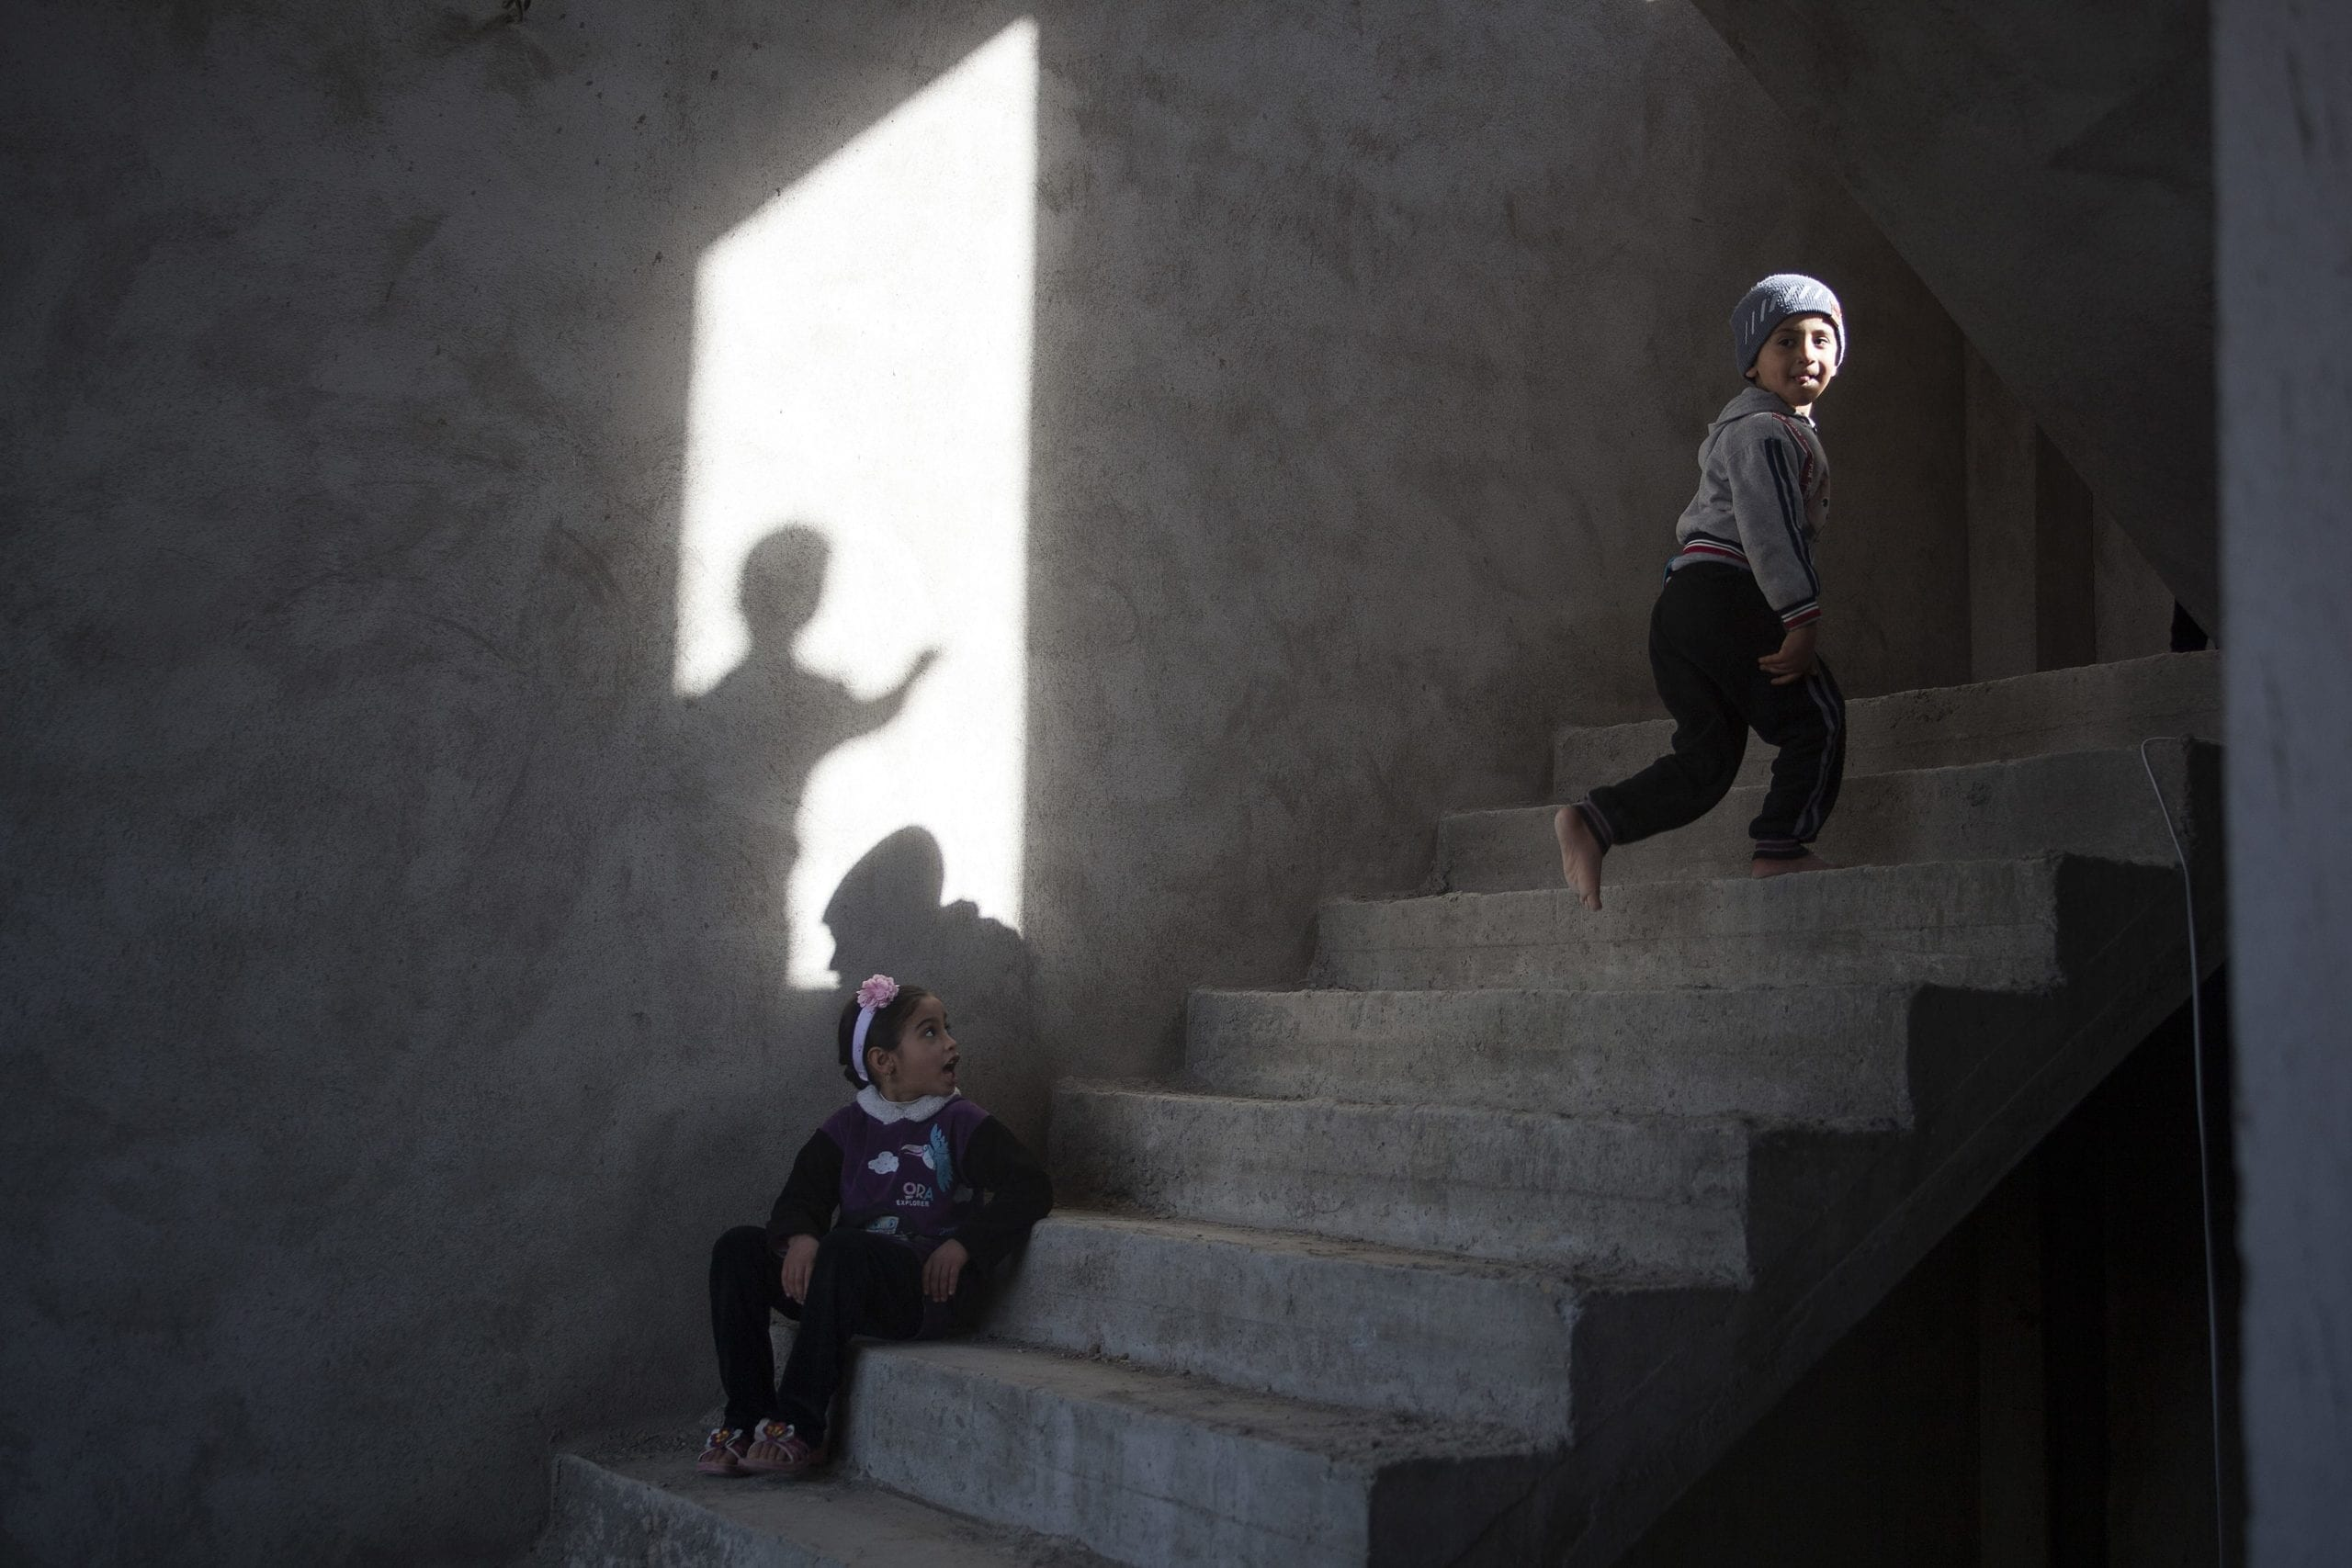 01/02/15. Sitak, Iraq. Children play on an unfinished staircase inside the building where they have been living with their families since August 2014, when they escaped from Sinjar.